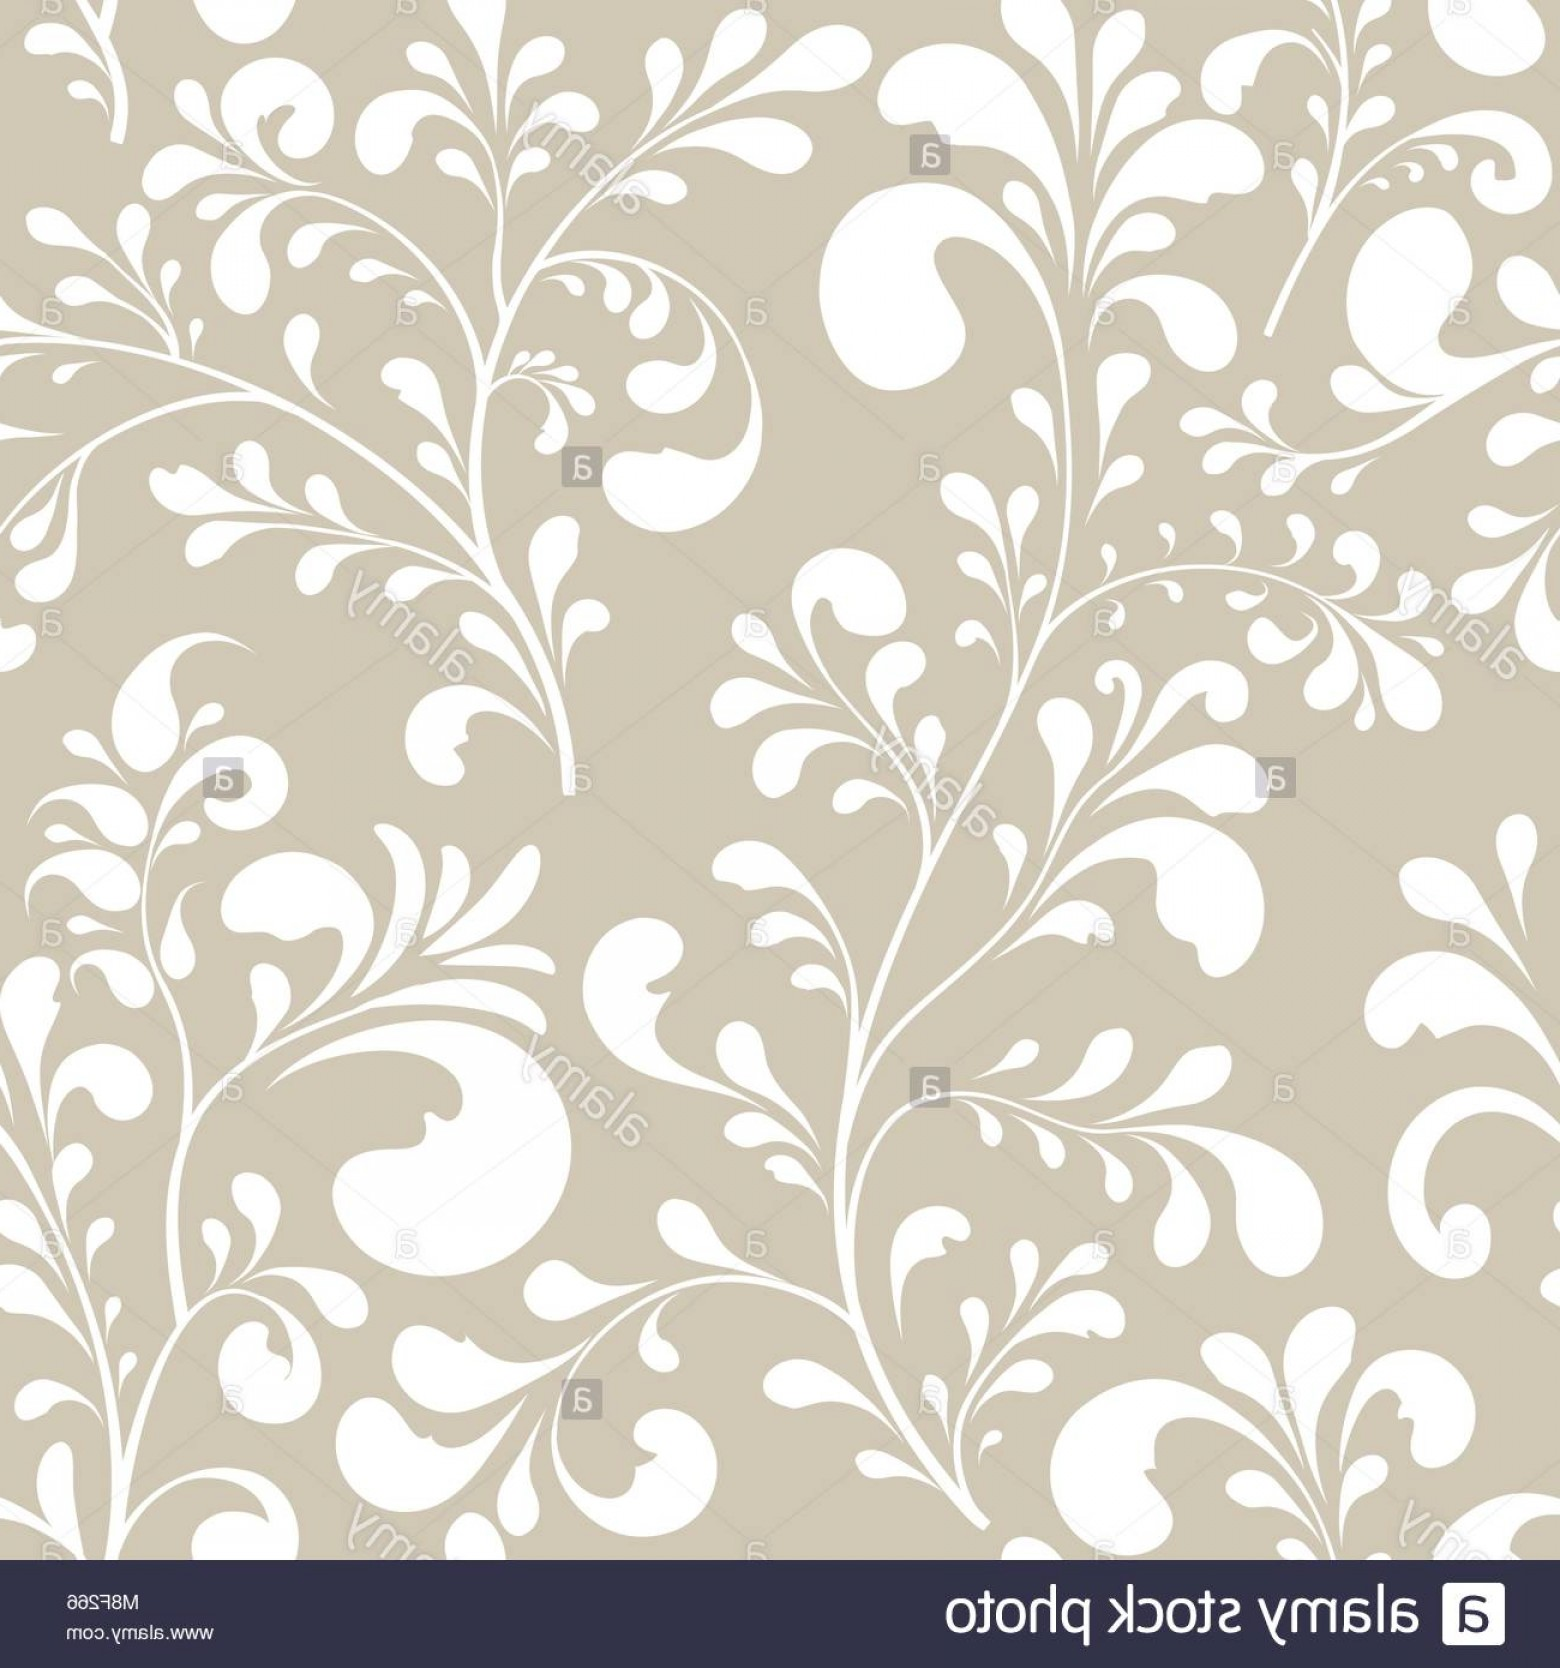 Vector Flourish Backgrounds: Stock Photo Floral Seamless Pattern Abstract Ornamental Flowers Flourish Leaves